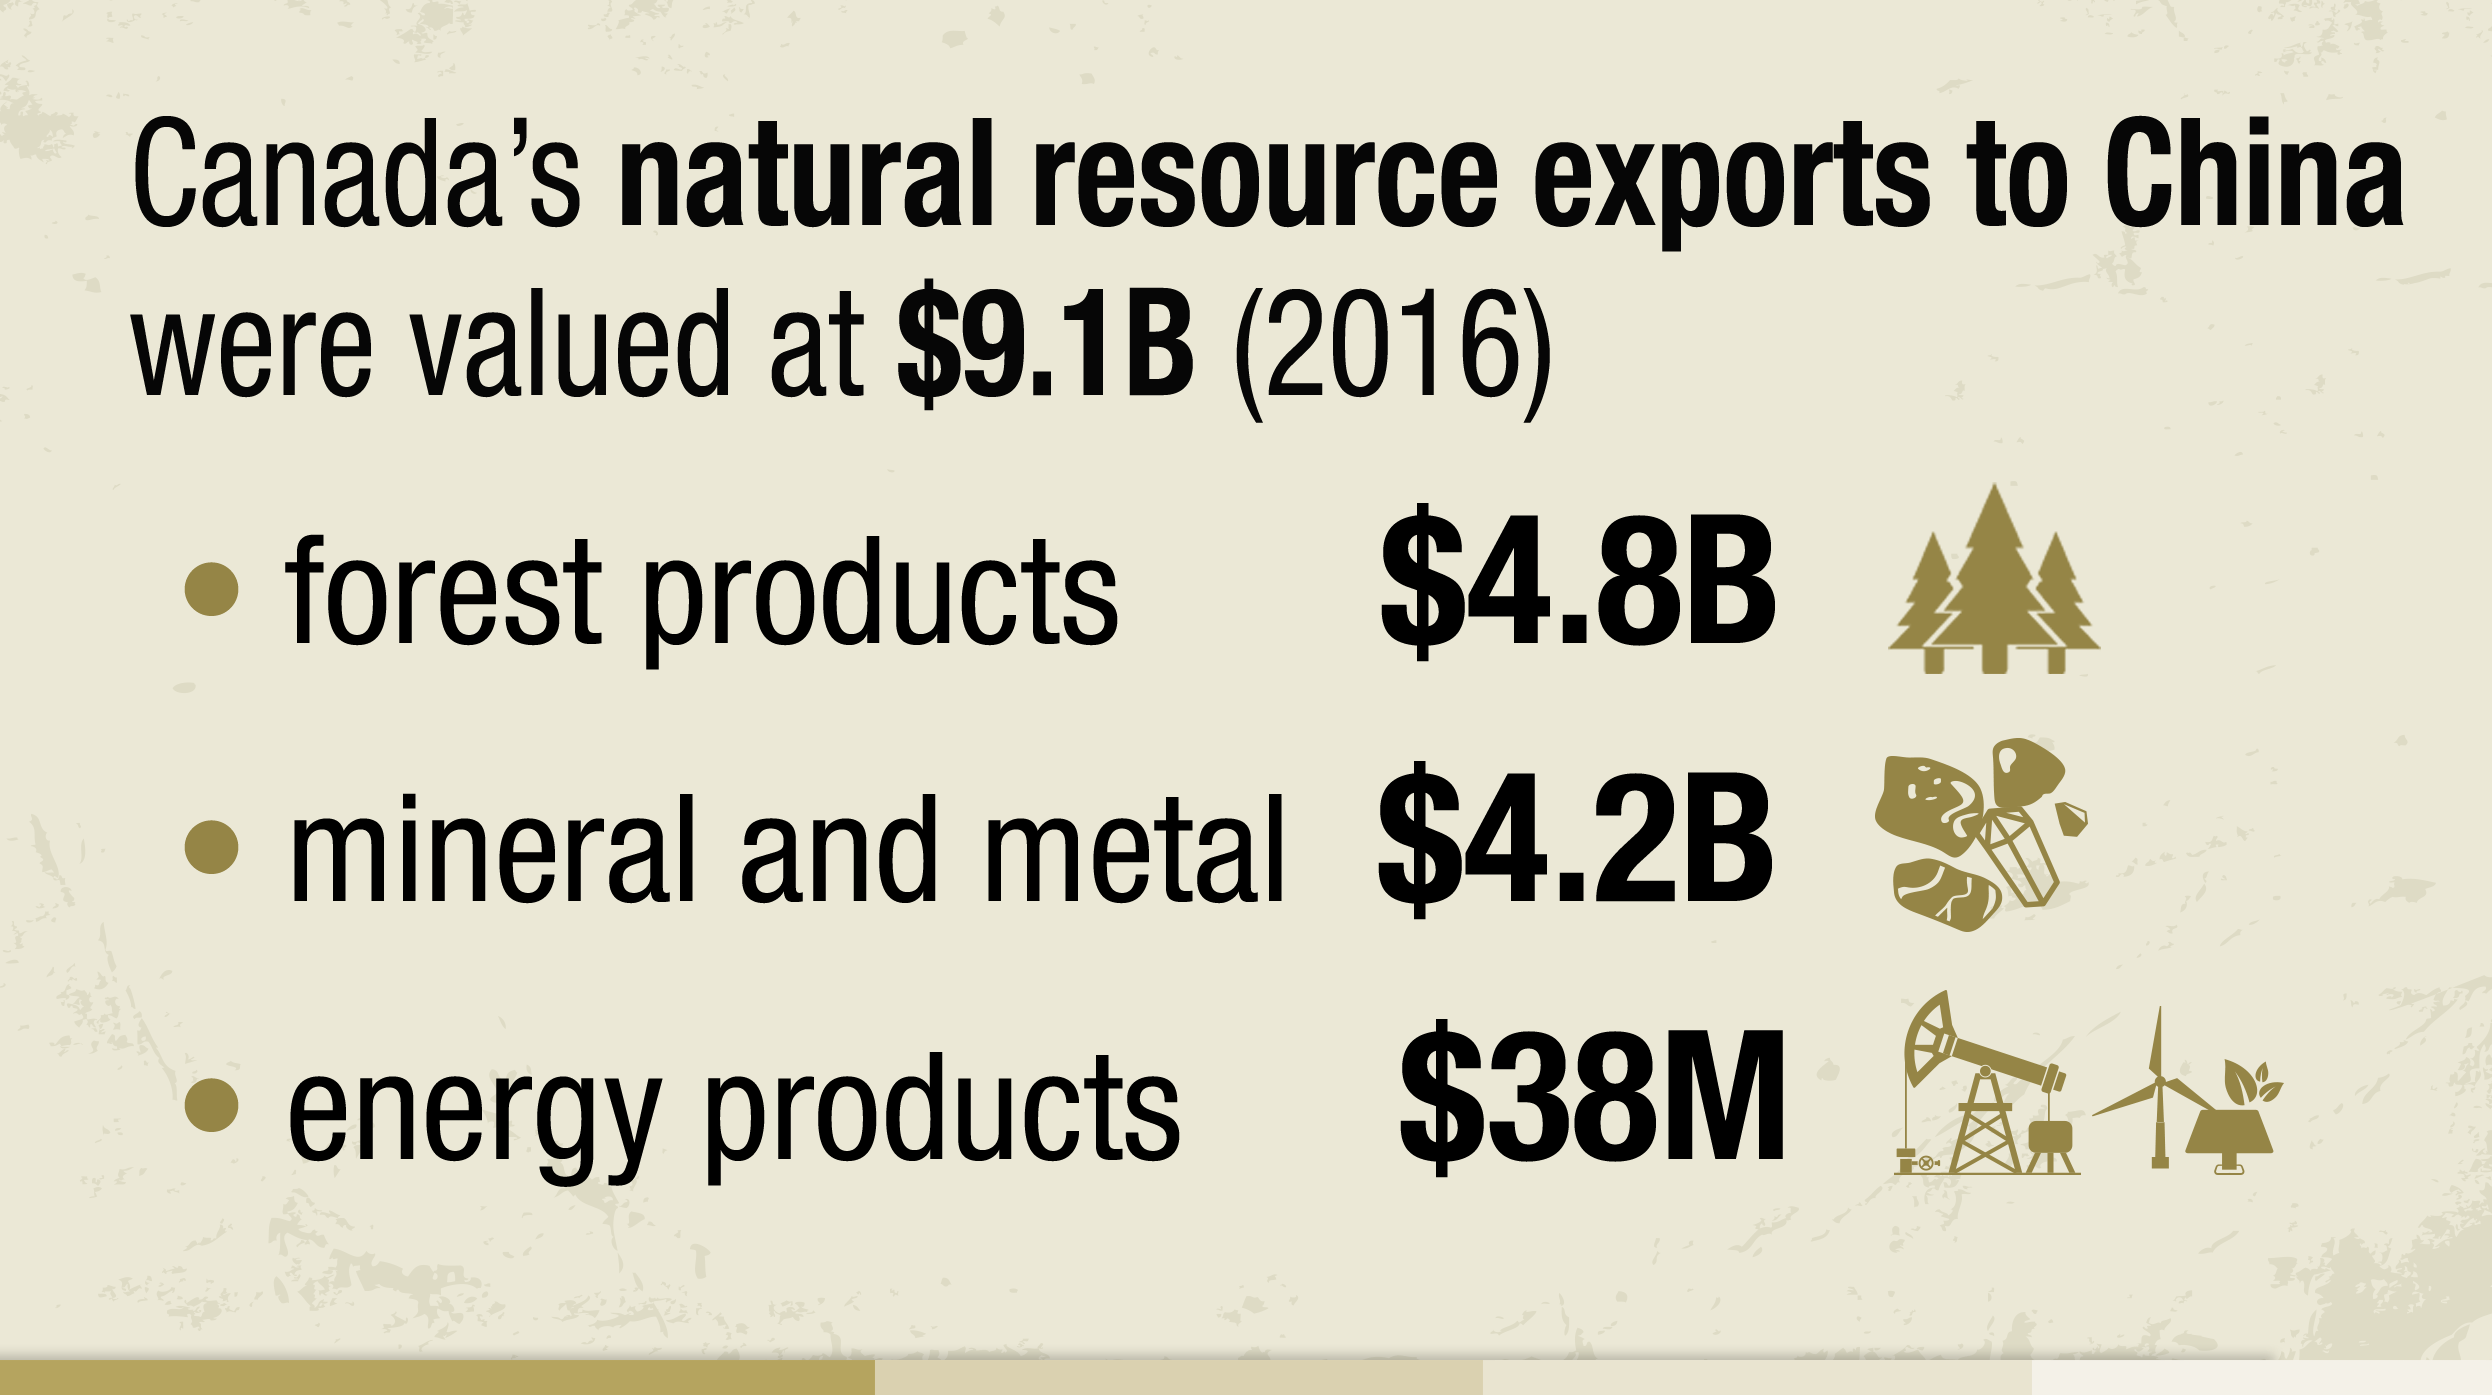 Info-graphic showing Canada's natural resources exports to China in 2016